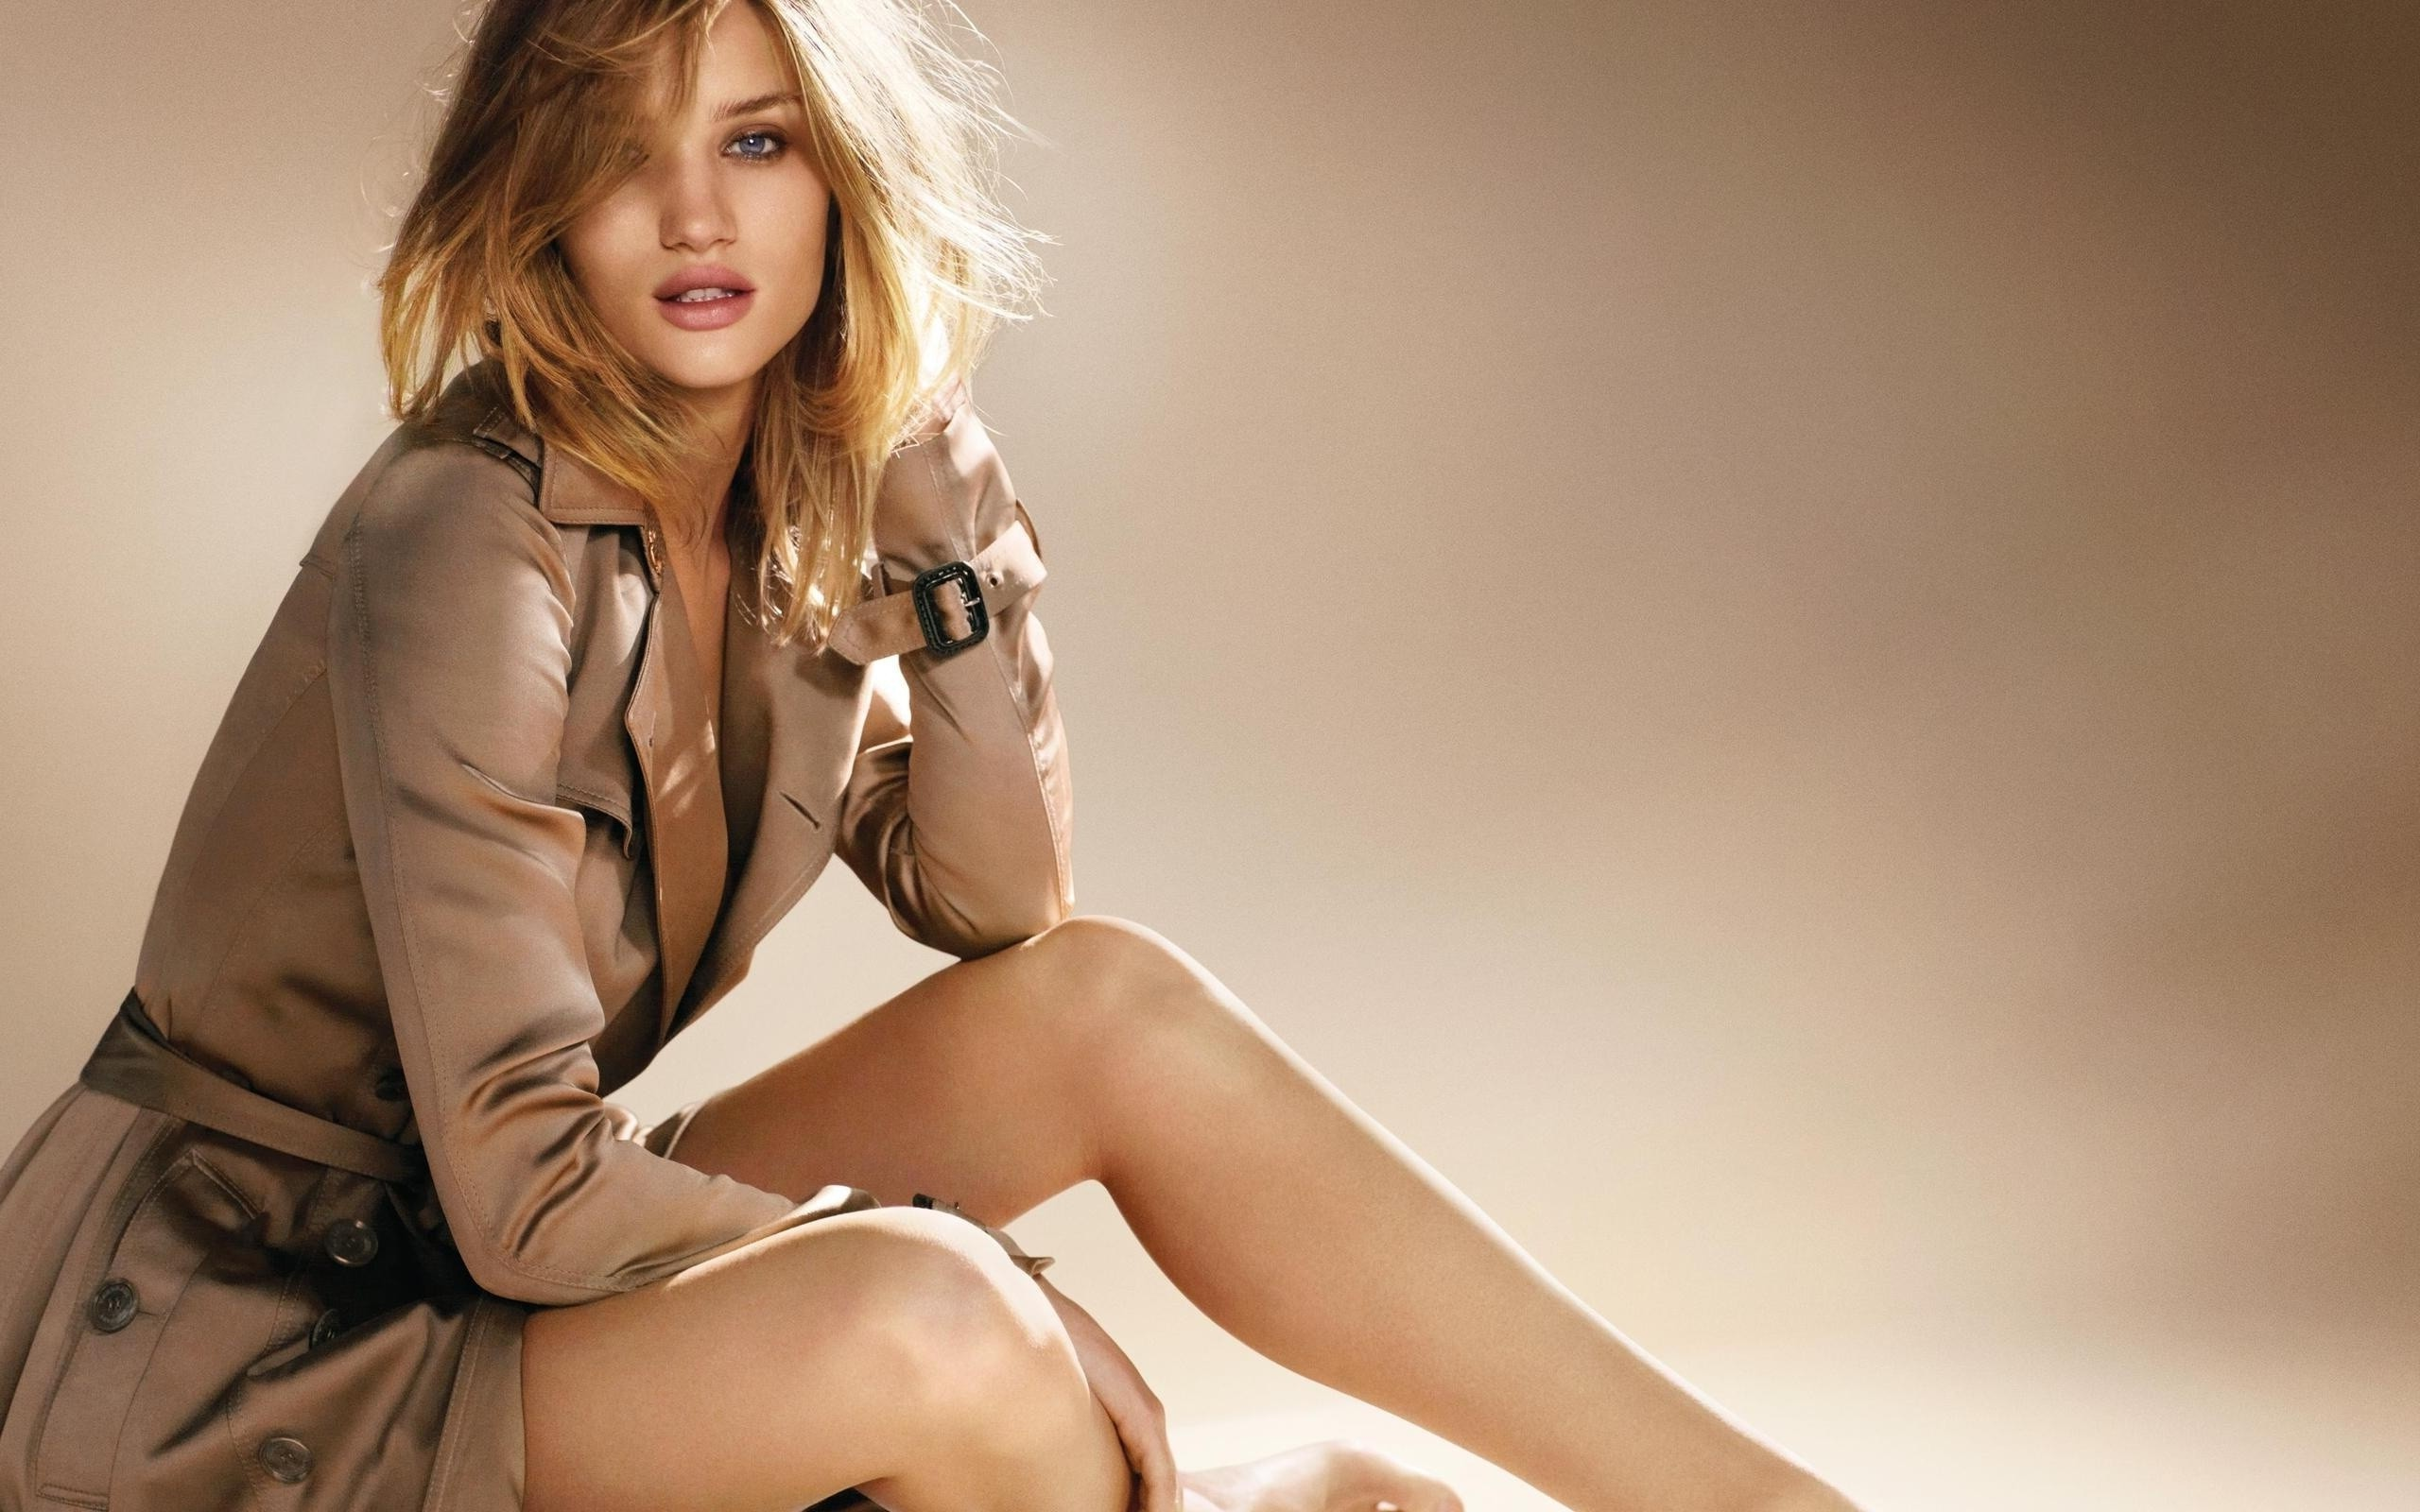 Rosie Huntington 2 Wallpaper HD